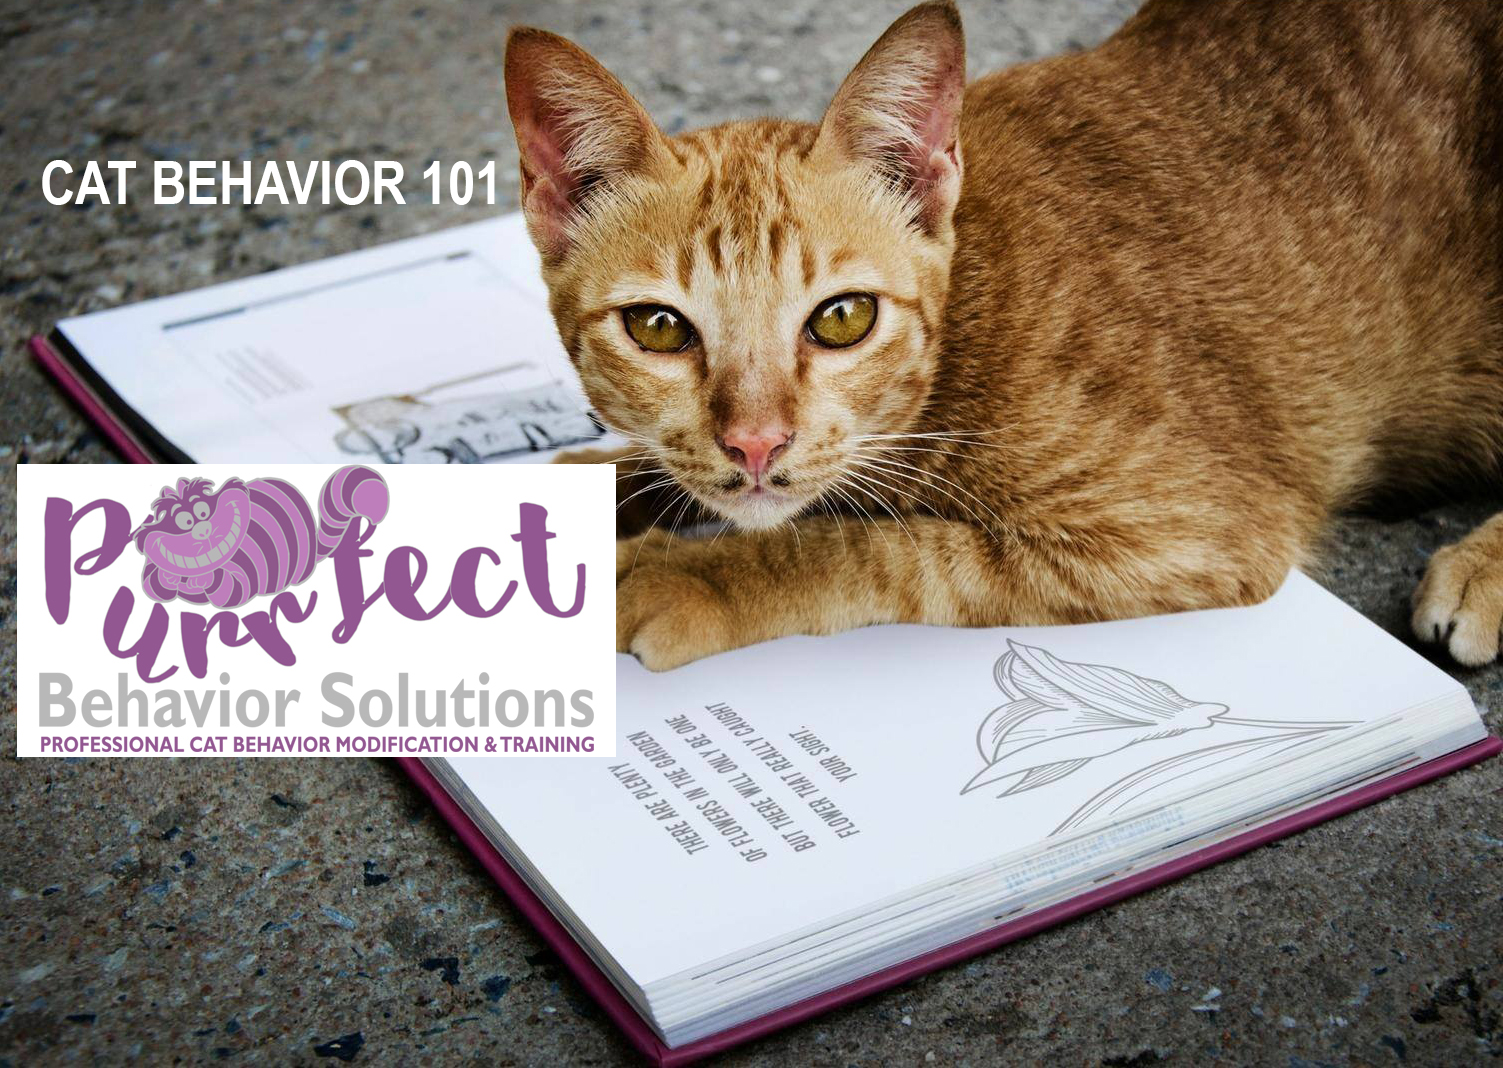 purrfect behavior solutions, cat behavior 101, seminar, class, cat behavior, study, professional